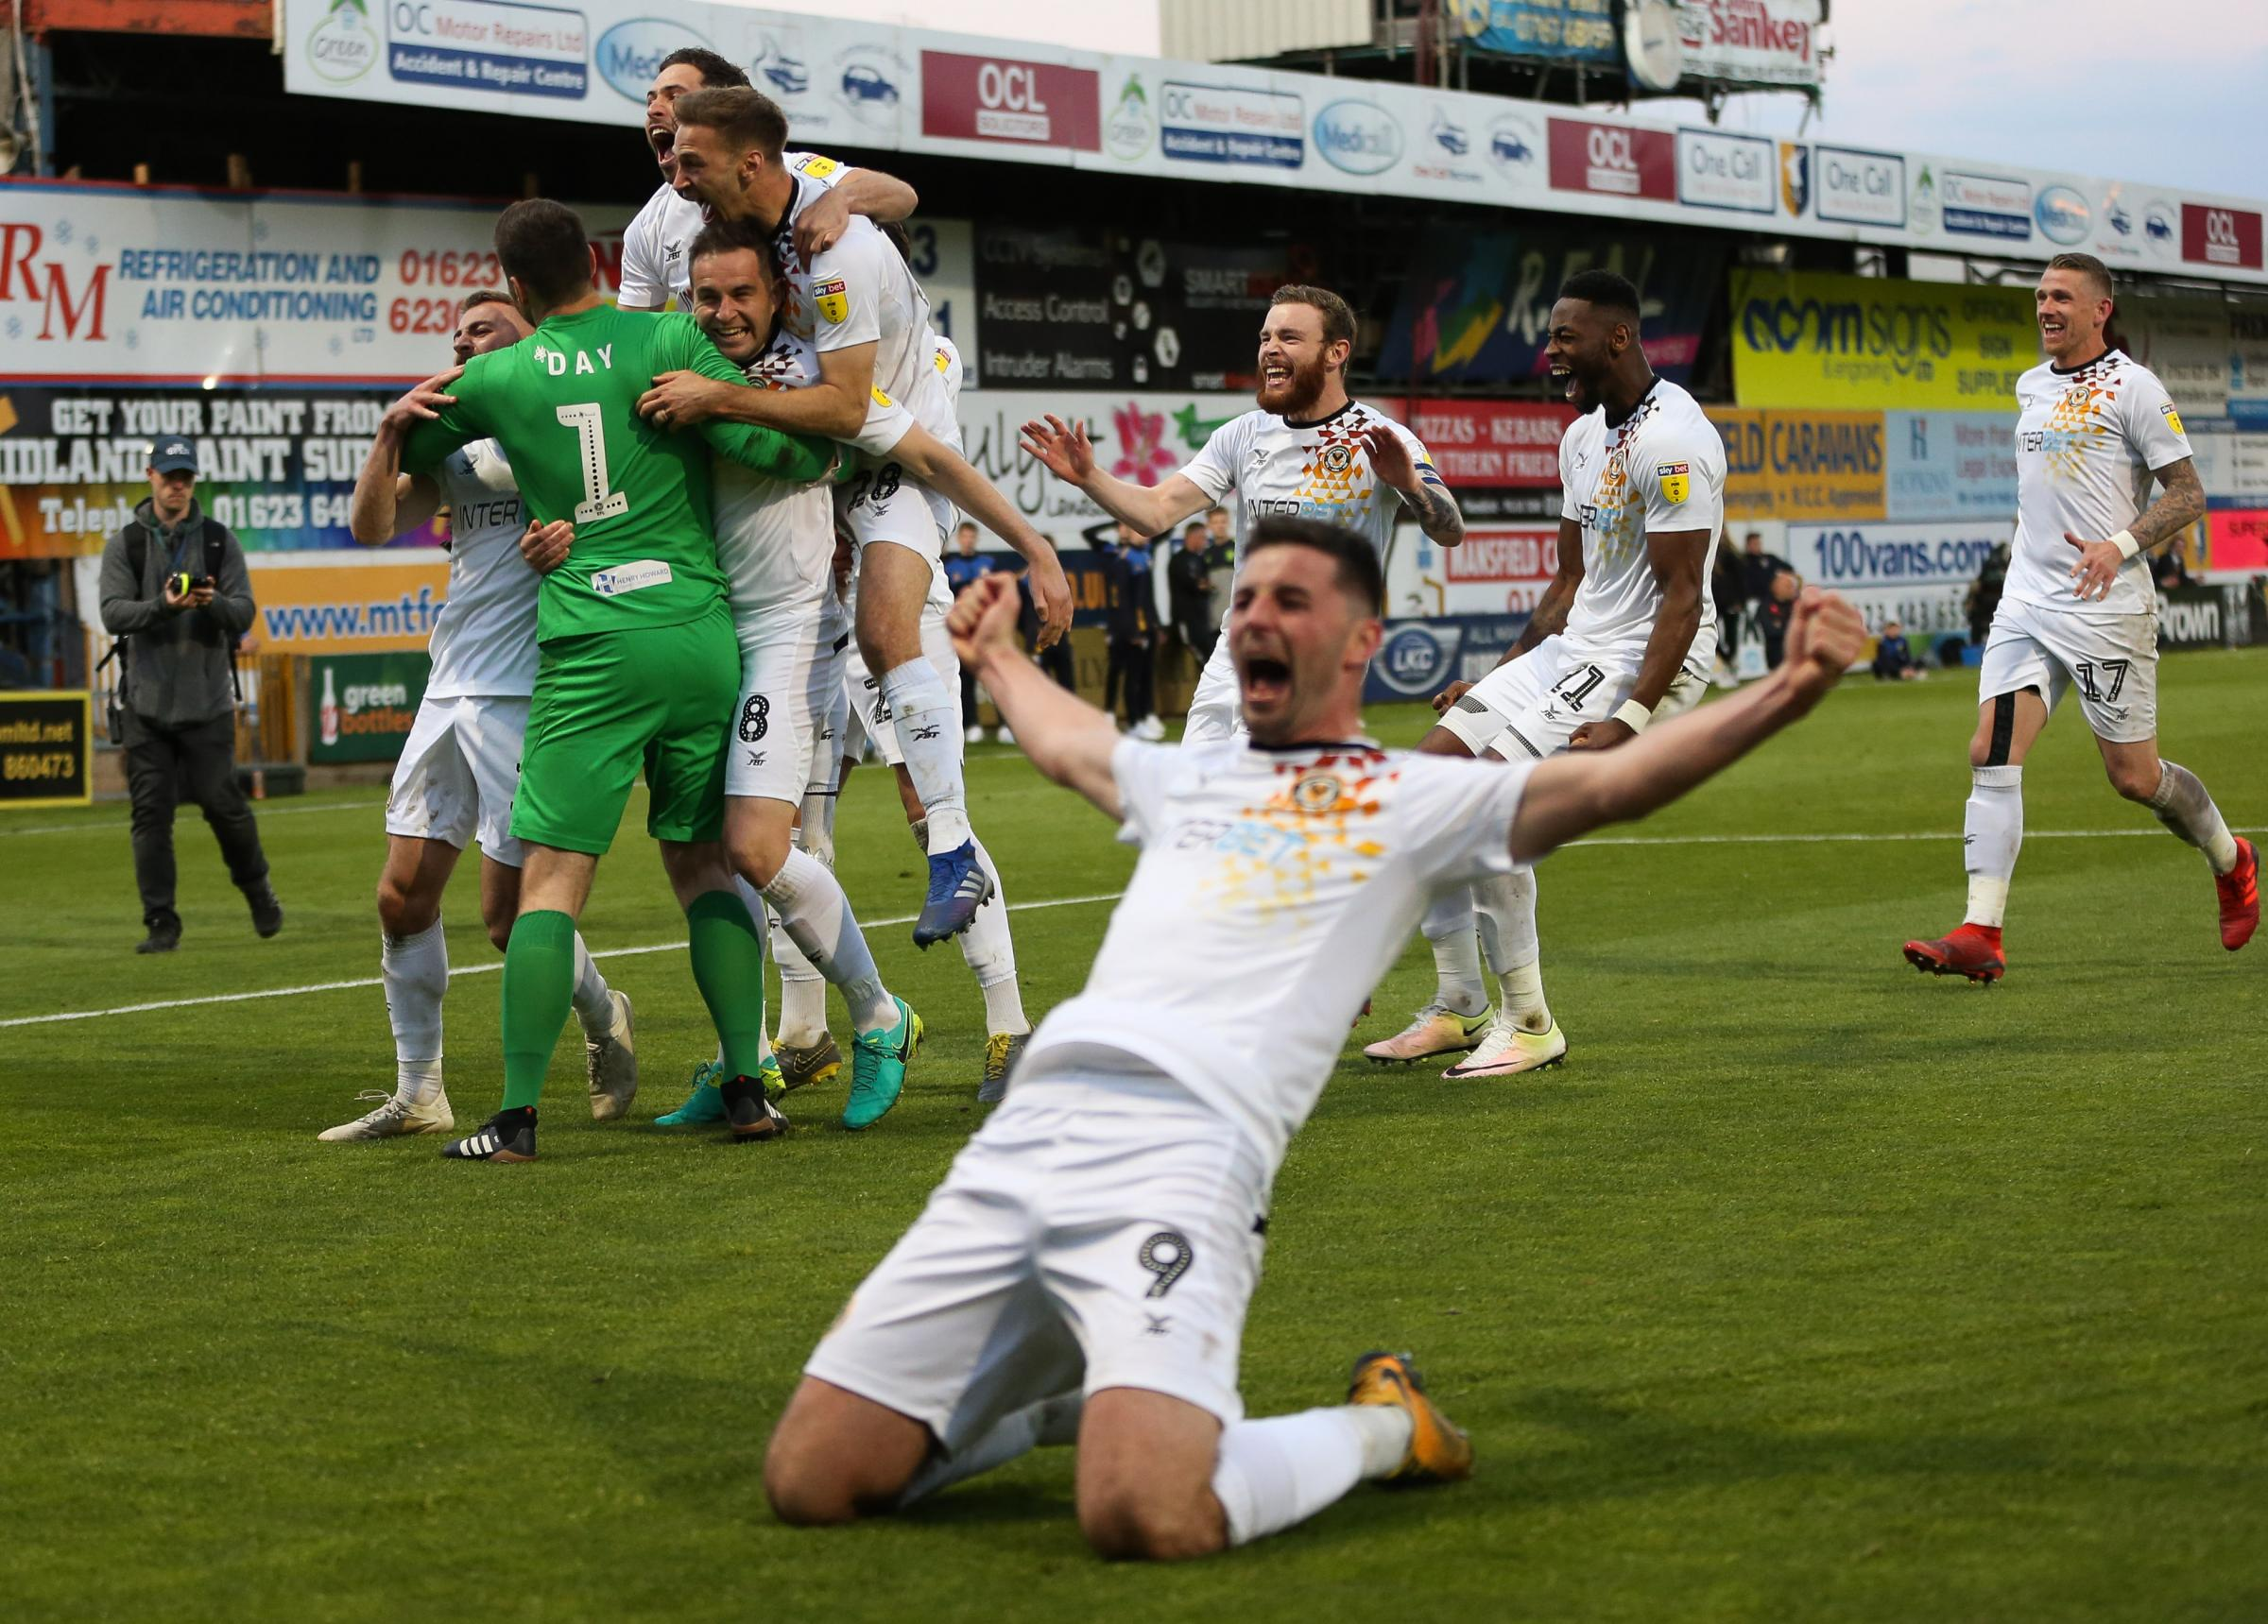 County are going to Wembley after shootout win at Mansfield